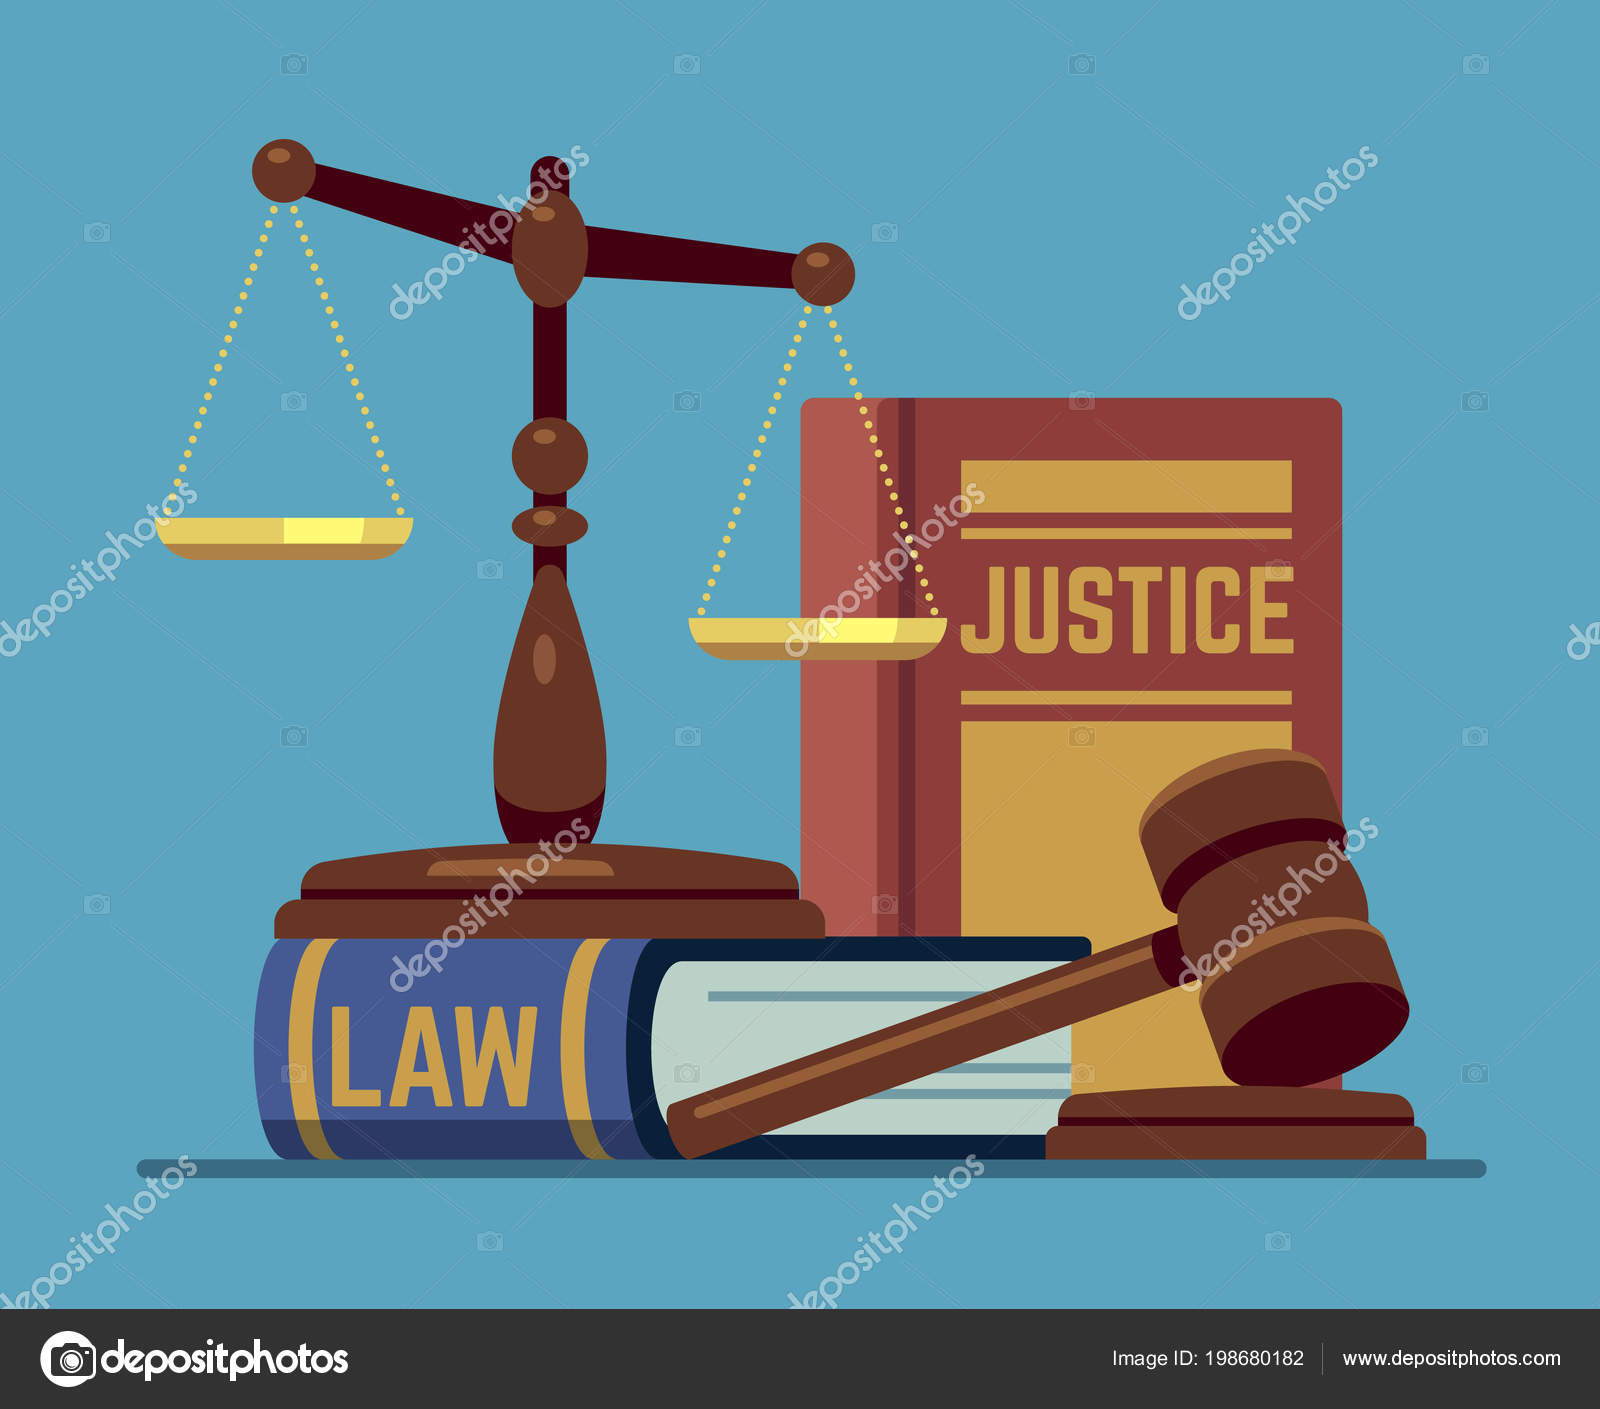 Image result for cartoon judge legal